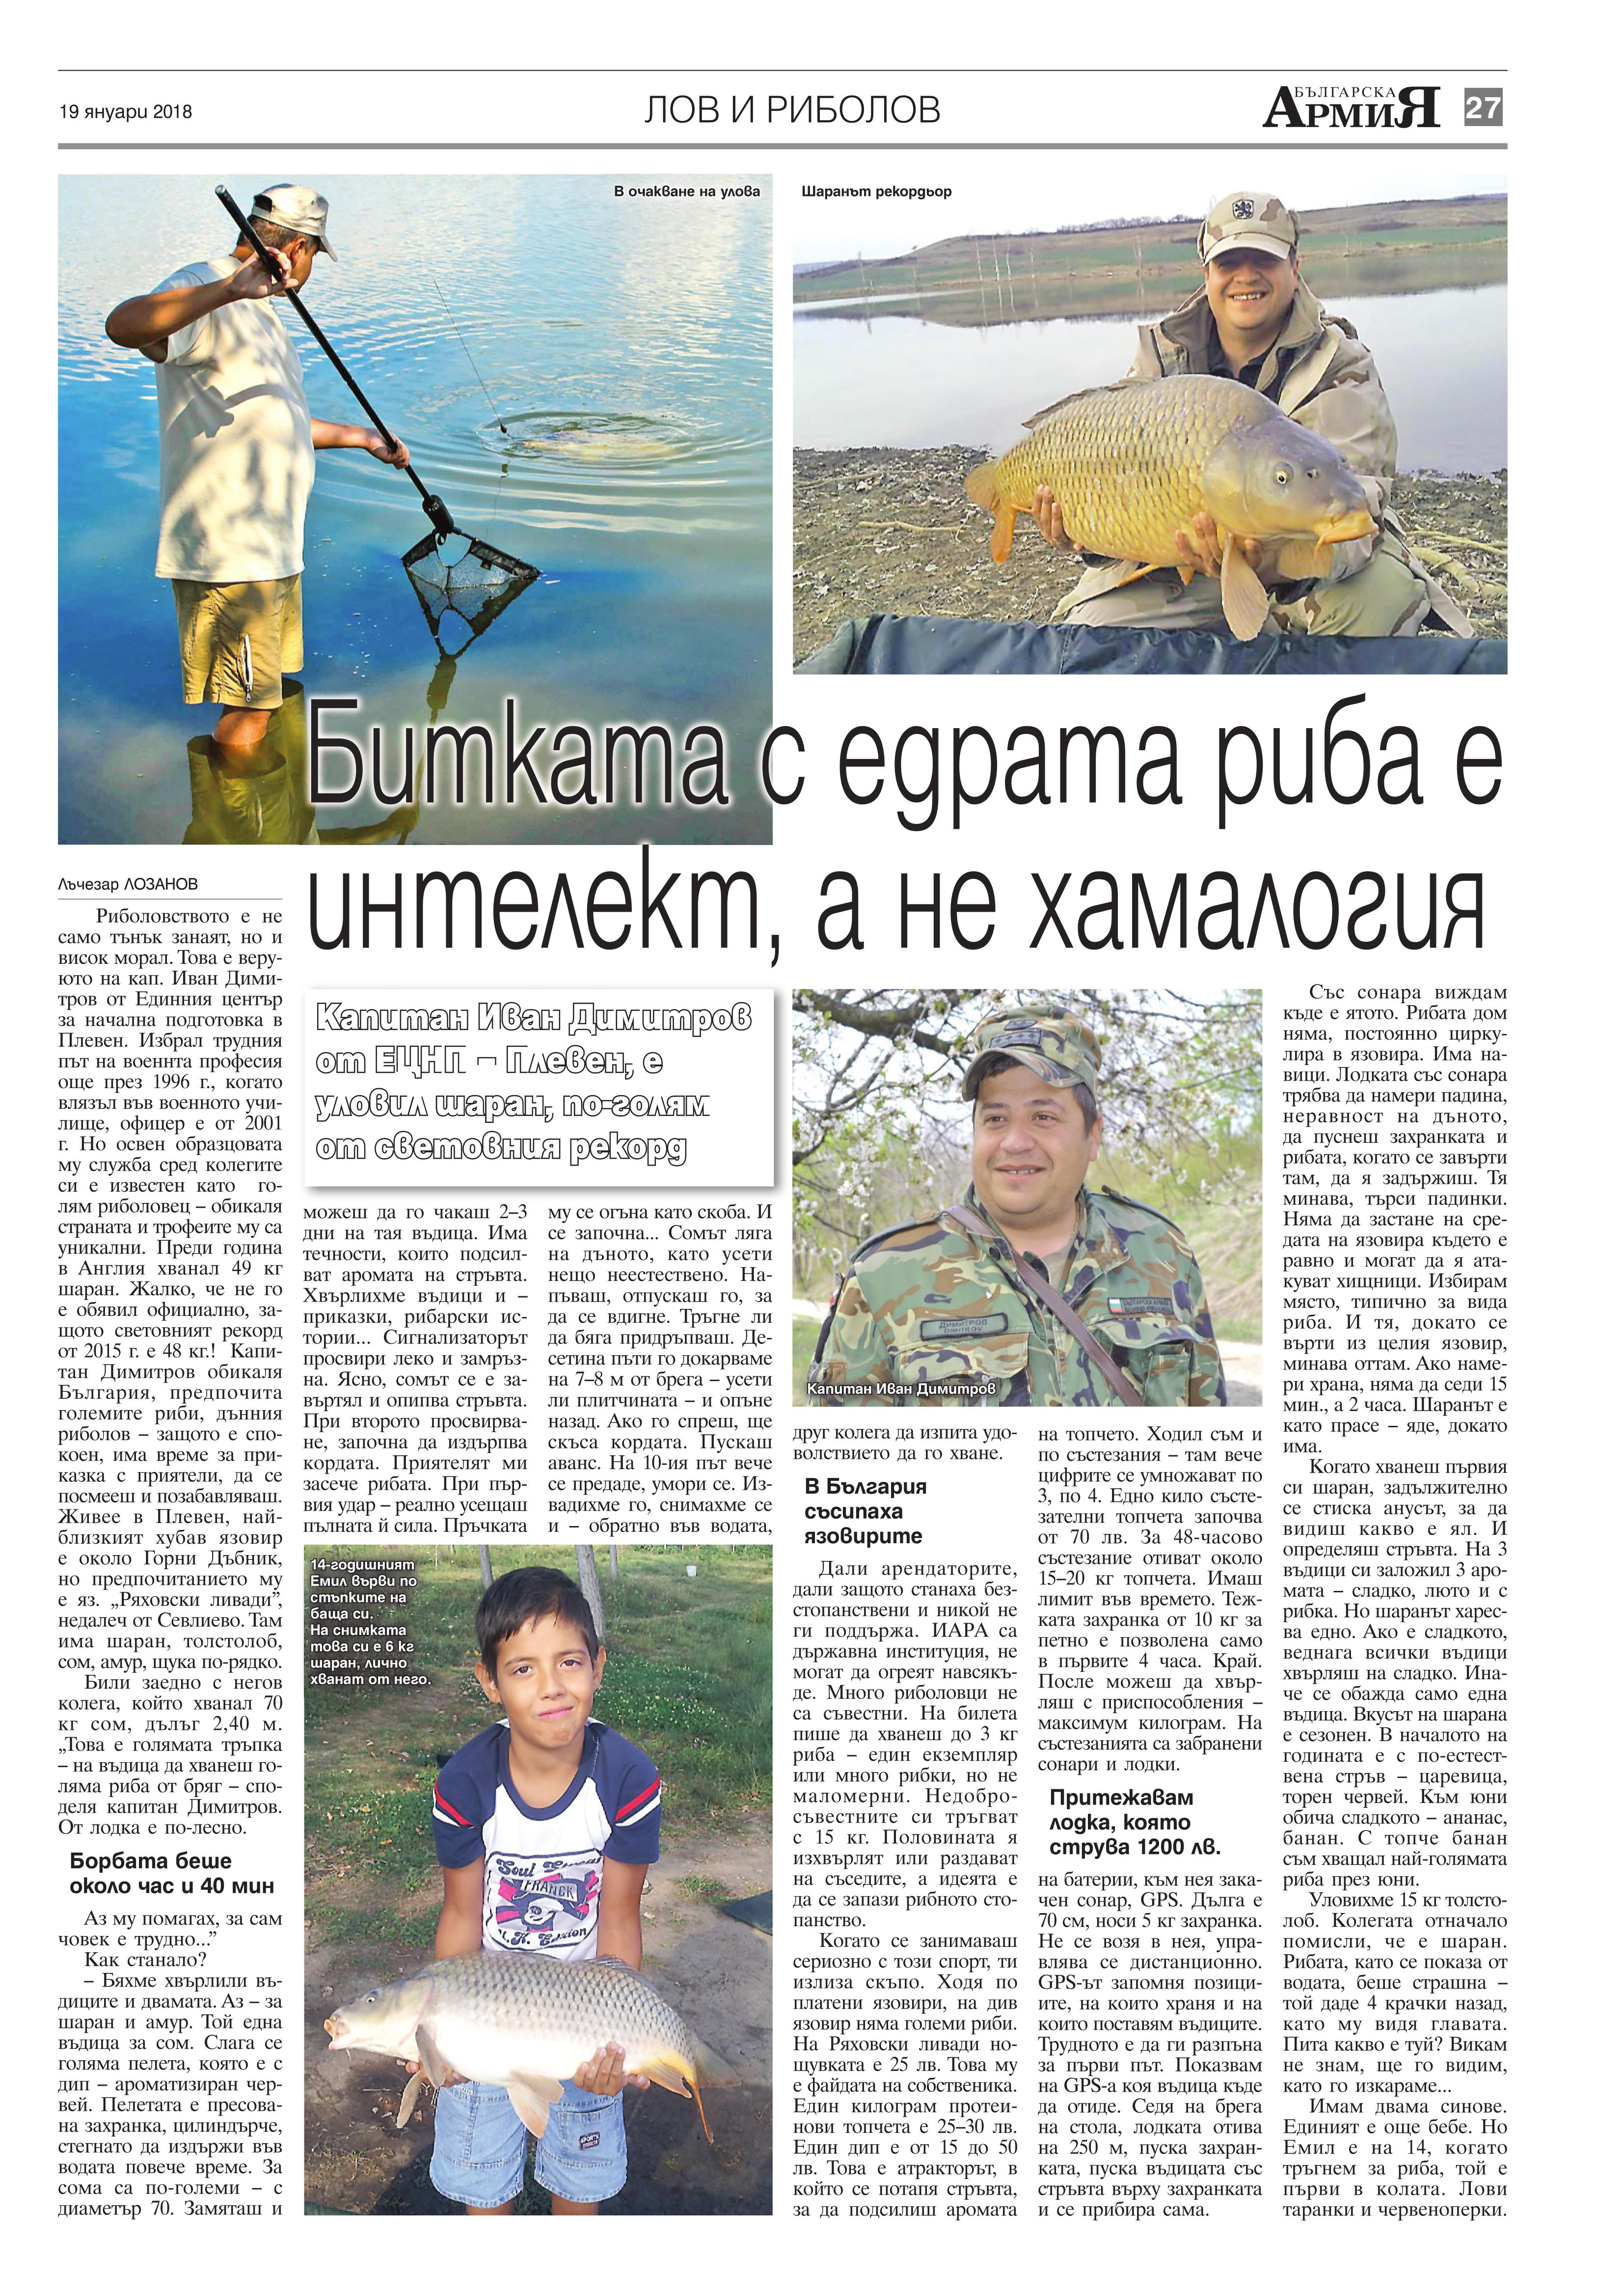 http://armymedia.bg/wp-content/uploads/2015/06/27.page1_-32.jpg